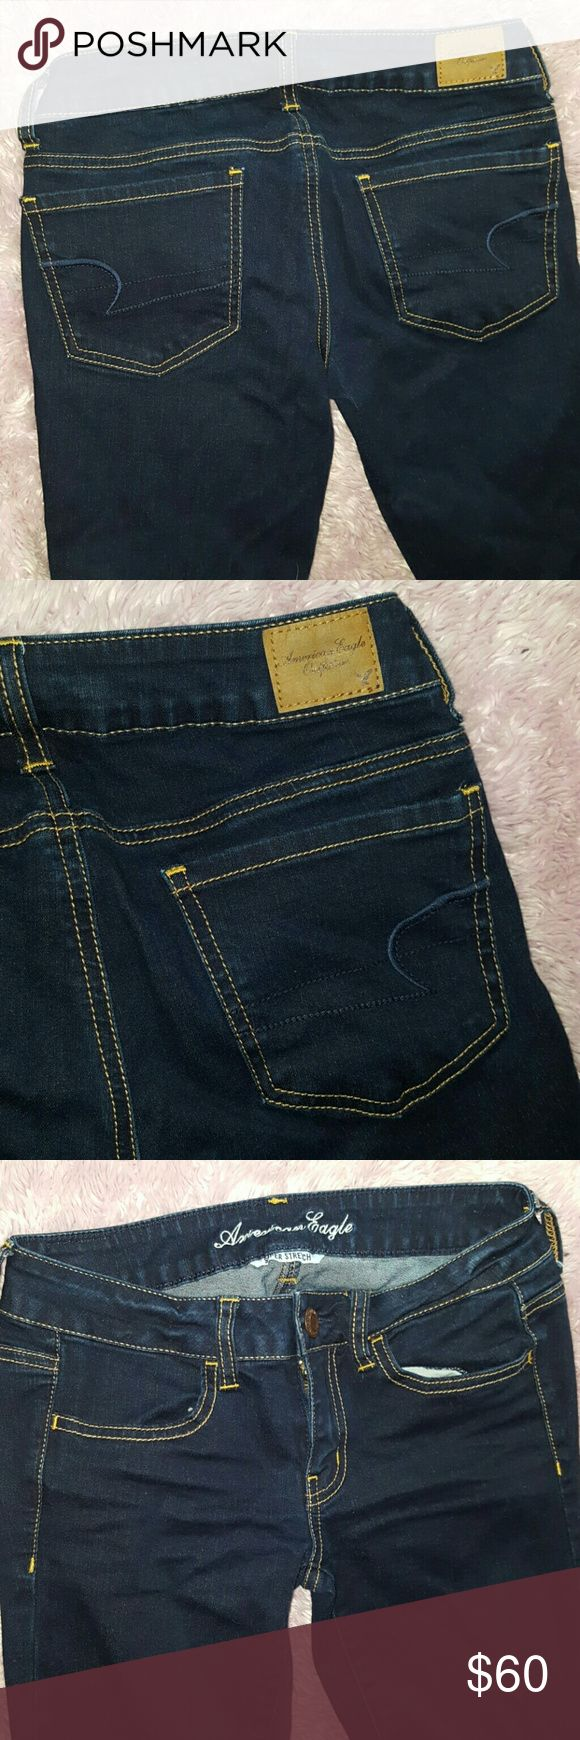 1 HR SALE~ JEGGING STRETCH American Eagle NWOT JEGGING SUPER STRETCH Jeans ~ American Eagle New without Tags ~ Size 2 regular ~ 72% cotton 14% polyester 13% rayon 1% spandex ~ darker wash AMAZING Pair of jeans! I ship daily. (#A3) American Eagle Outfitters Jeans Skinny